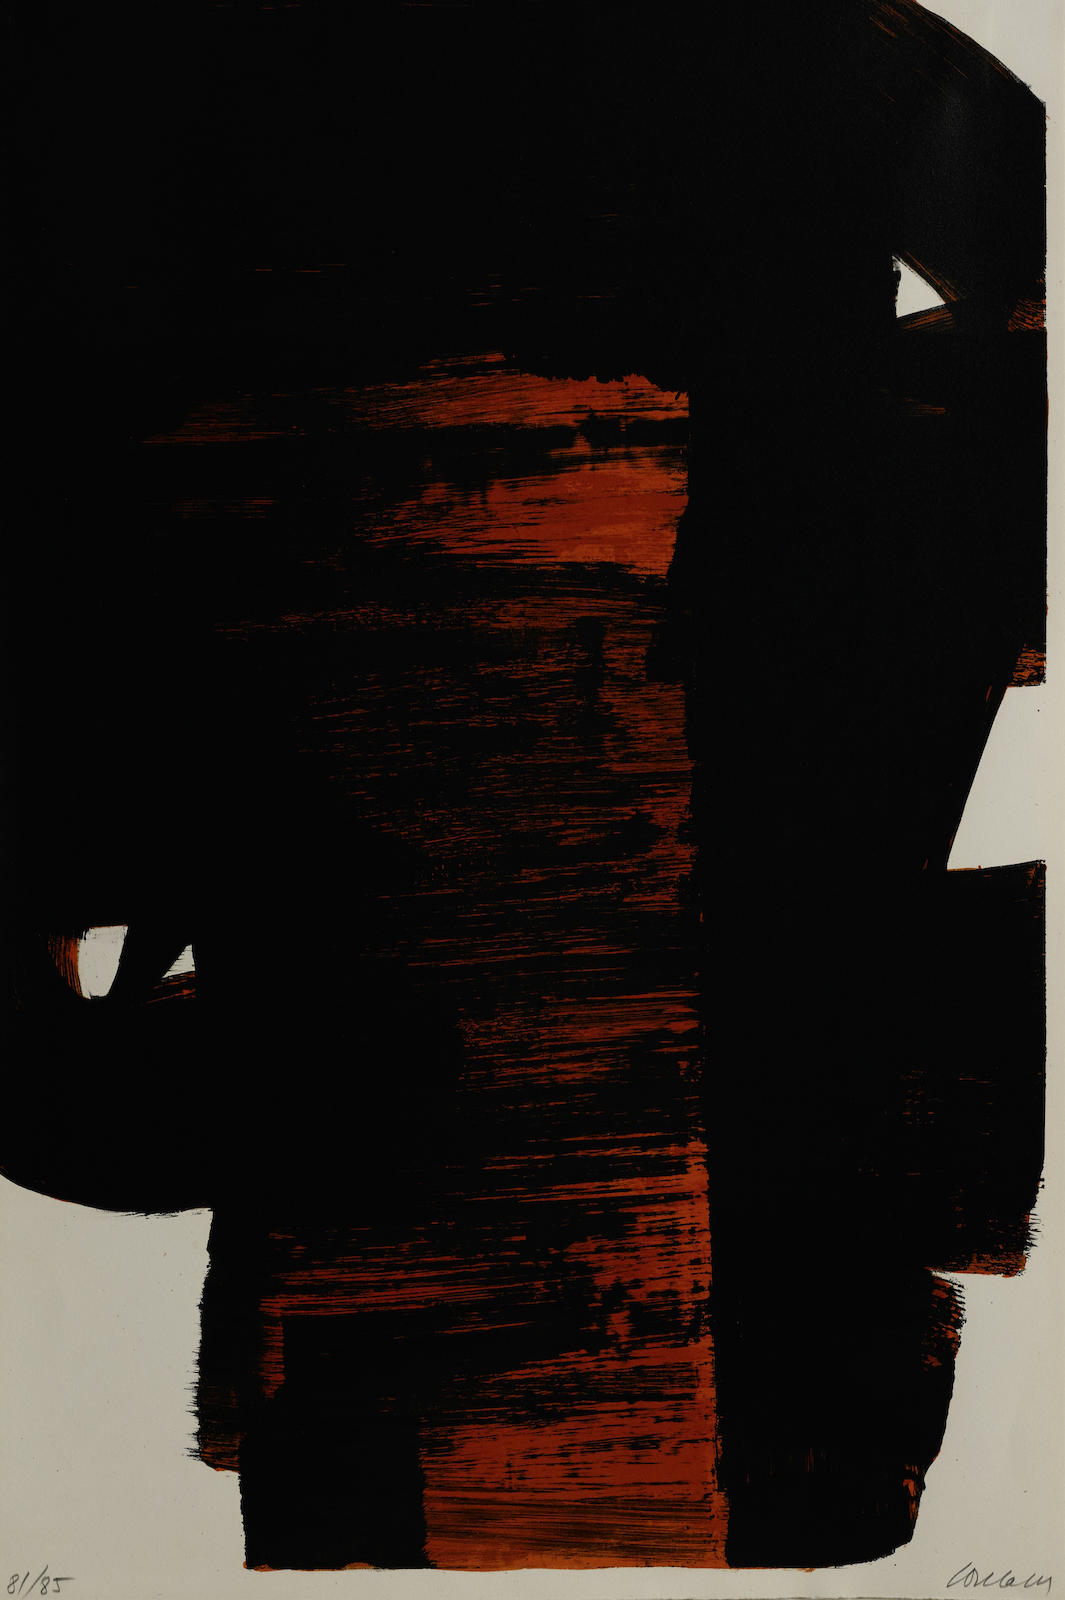 Pierre Soulages-Lithograph No. 26-1968